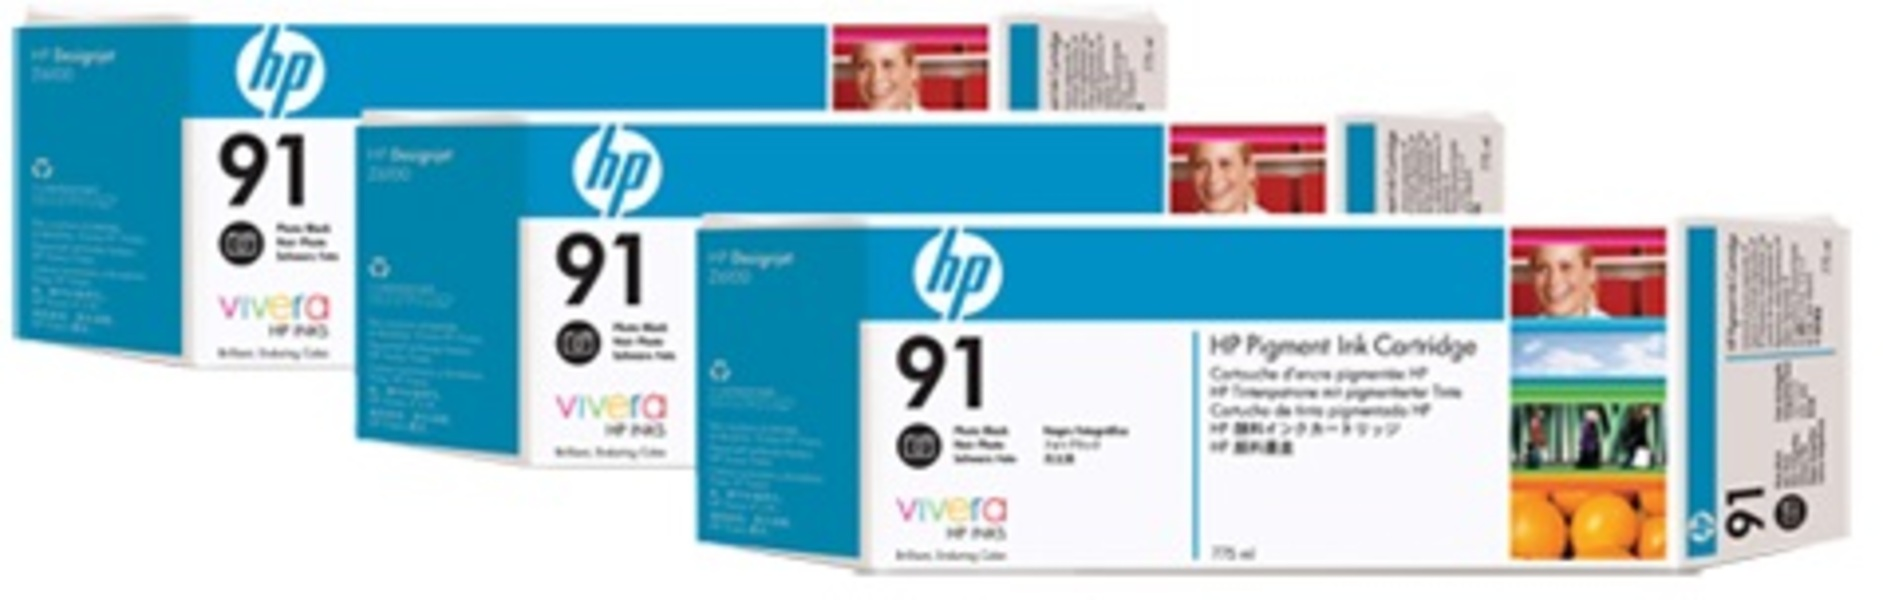 HP Ink Cartr., 91, black photo C9481A